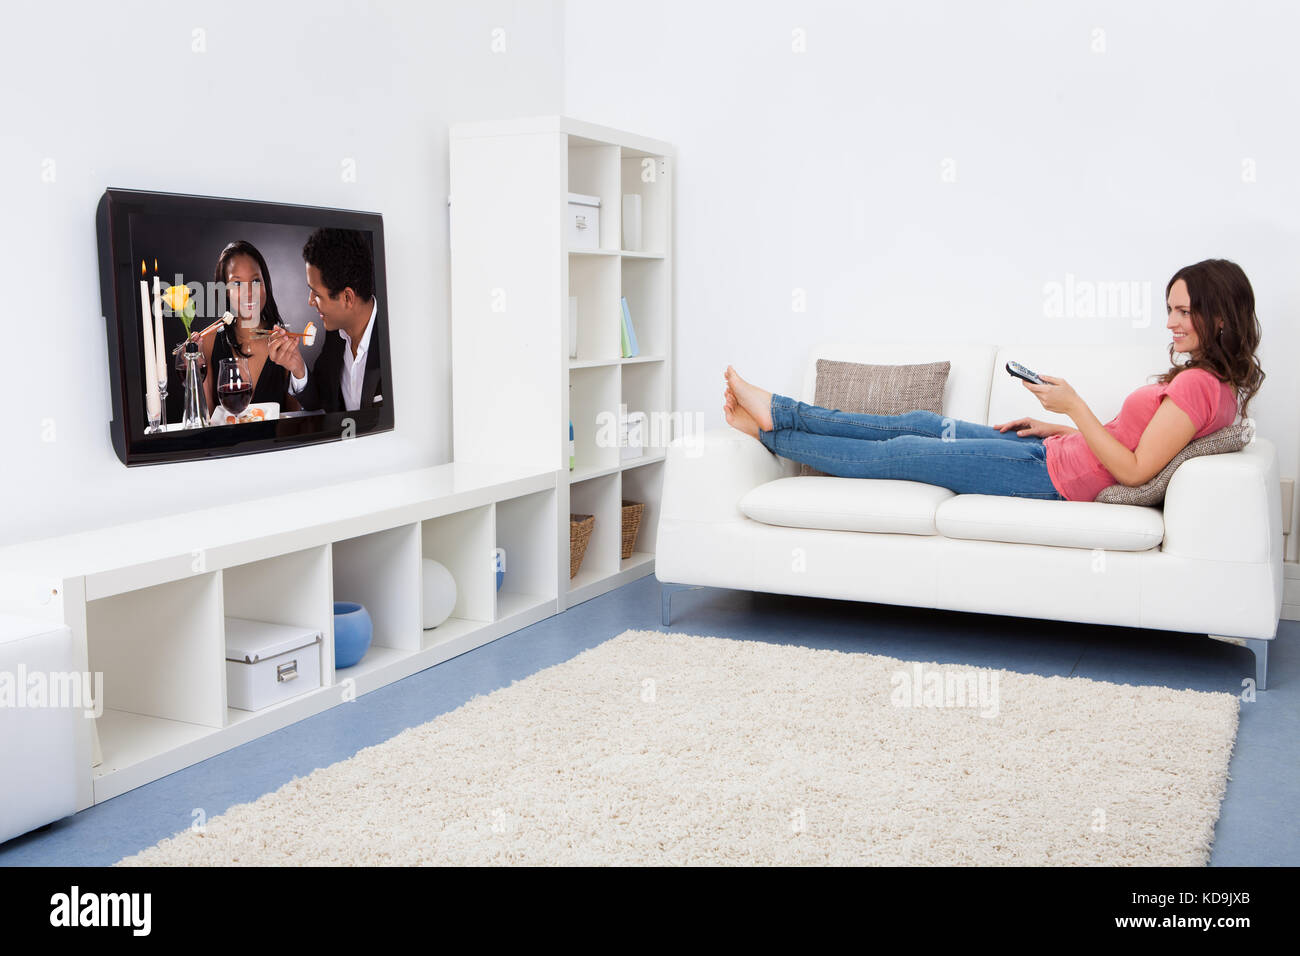 Portrait Of Smiling Woman Sitting On Couch Watching Television - Stock Image